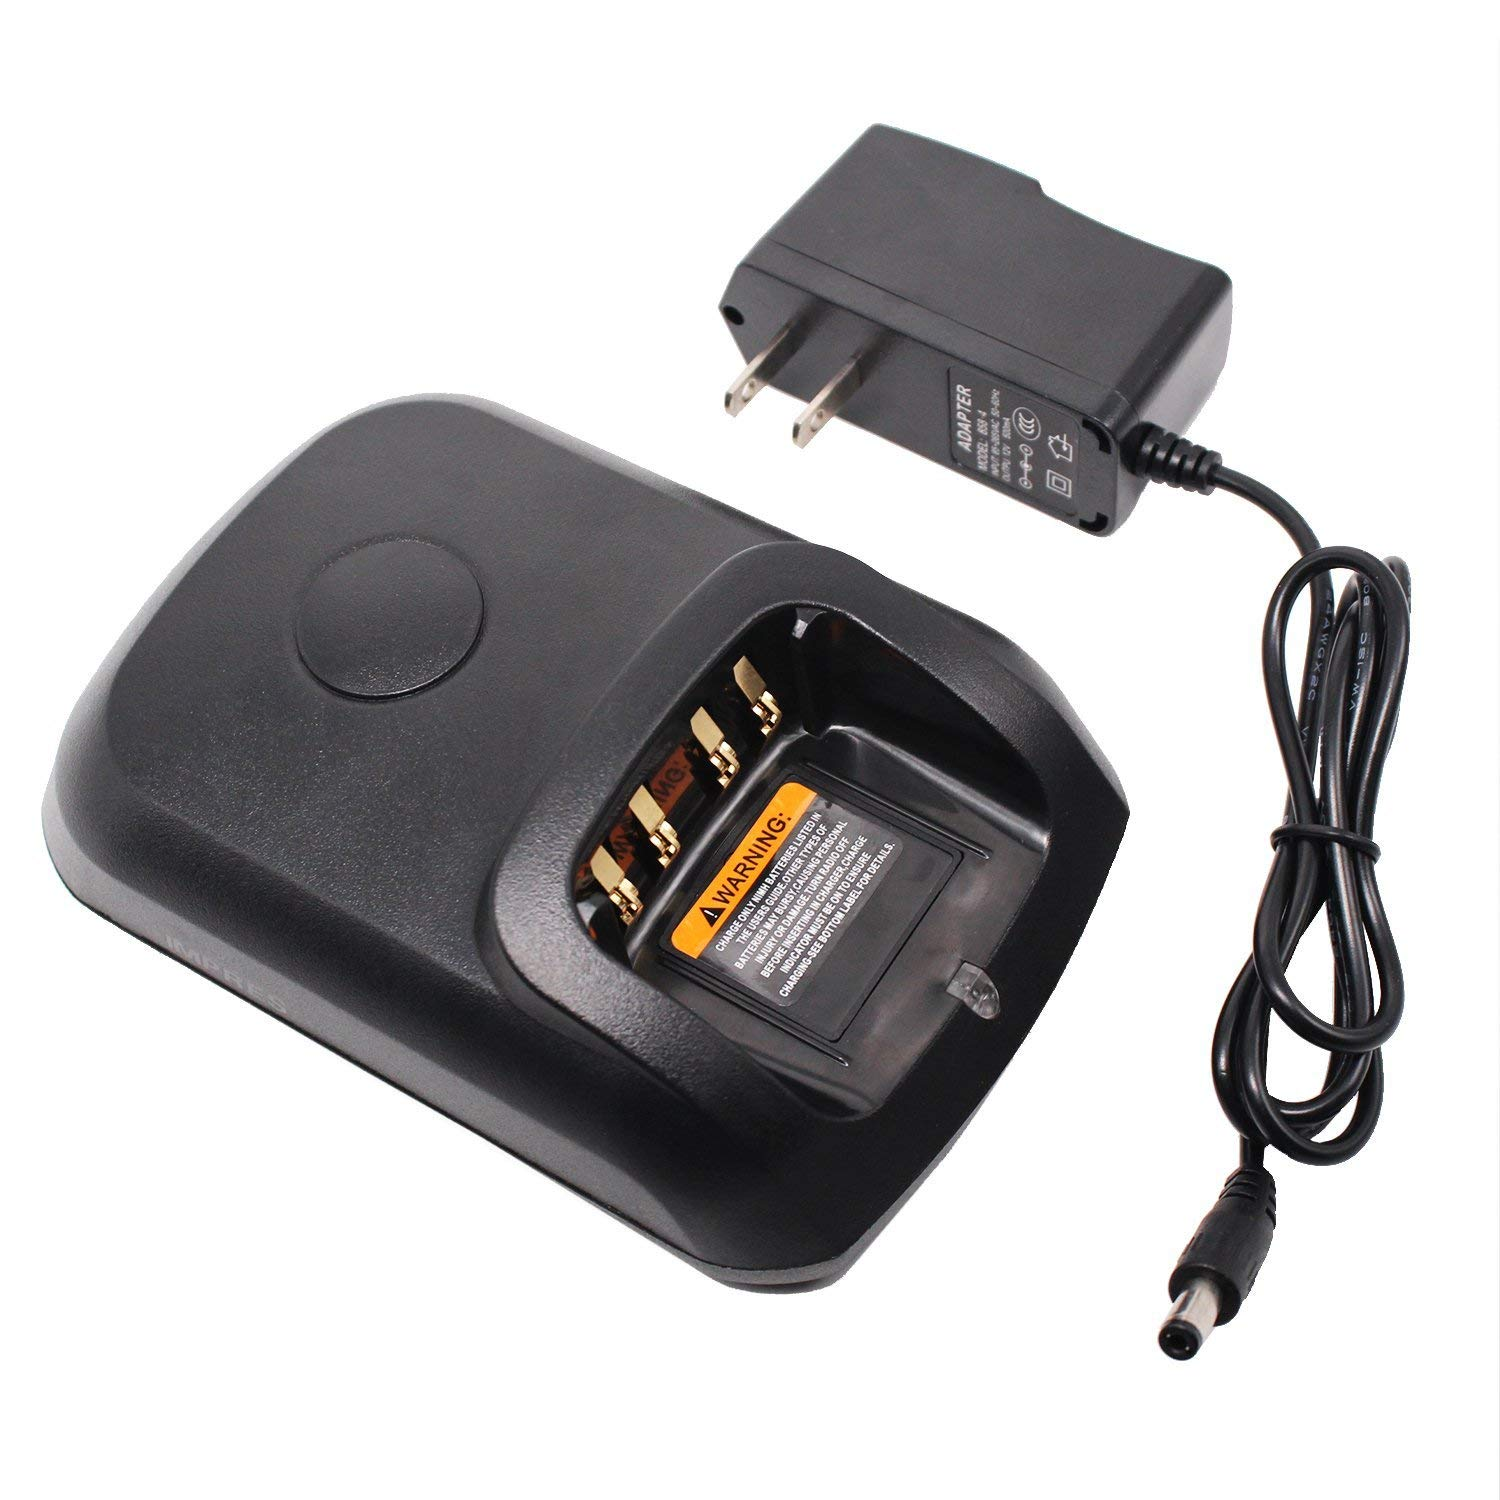 WPLN4226 Battery Charger for <font><b>Motorola</b></font> PMNN4077 PMNN4103 PMNN4409 DP4400 <font><b>DP4600</b></font> DP4801 DP3401 DP3600 DP2400 DGP6150 XPR6350 P8268 image